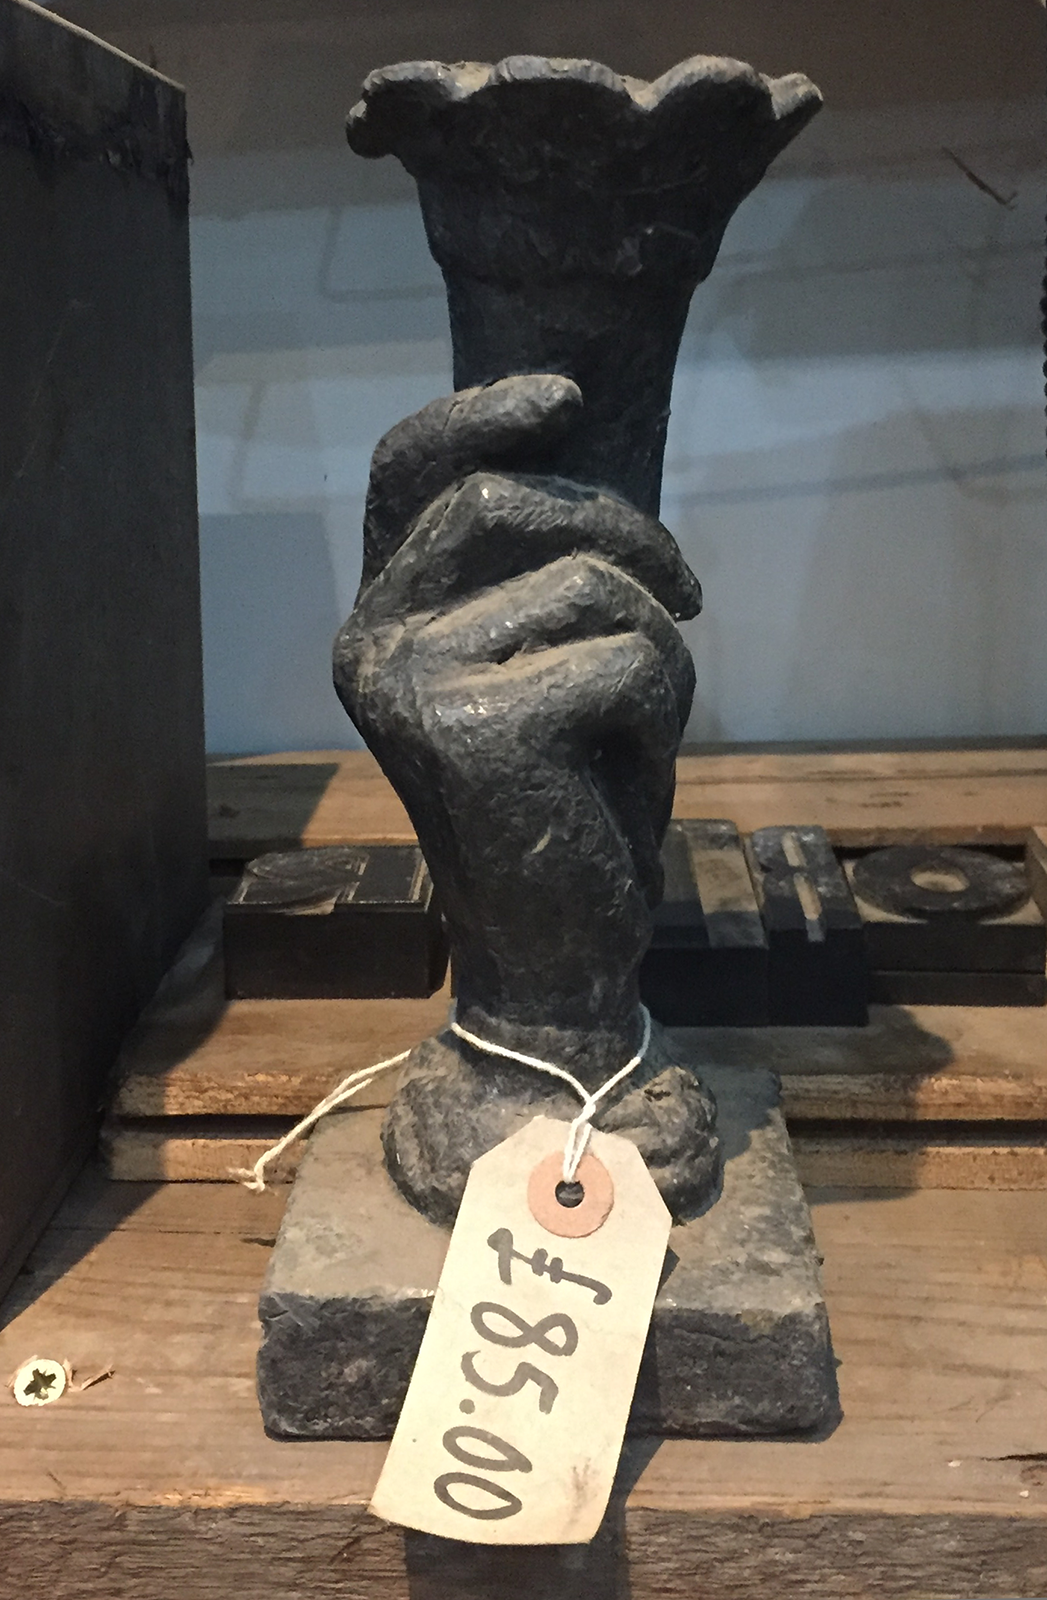 Priced hand sculpture at reclamation centre